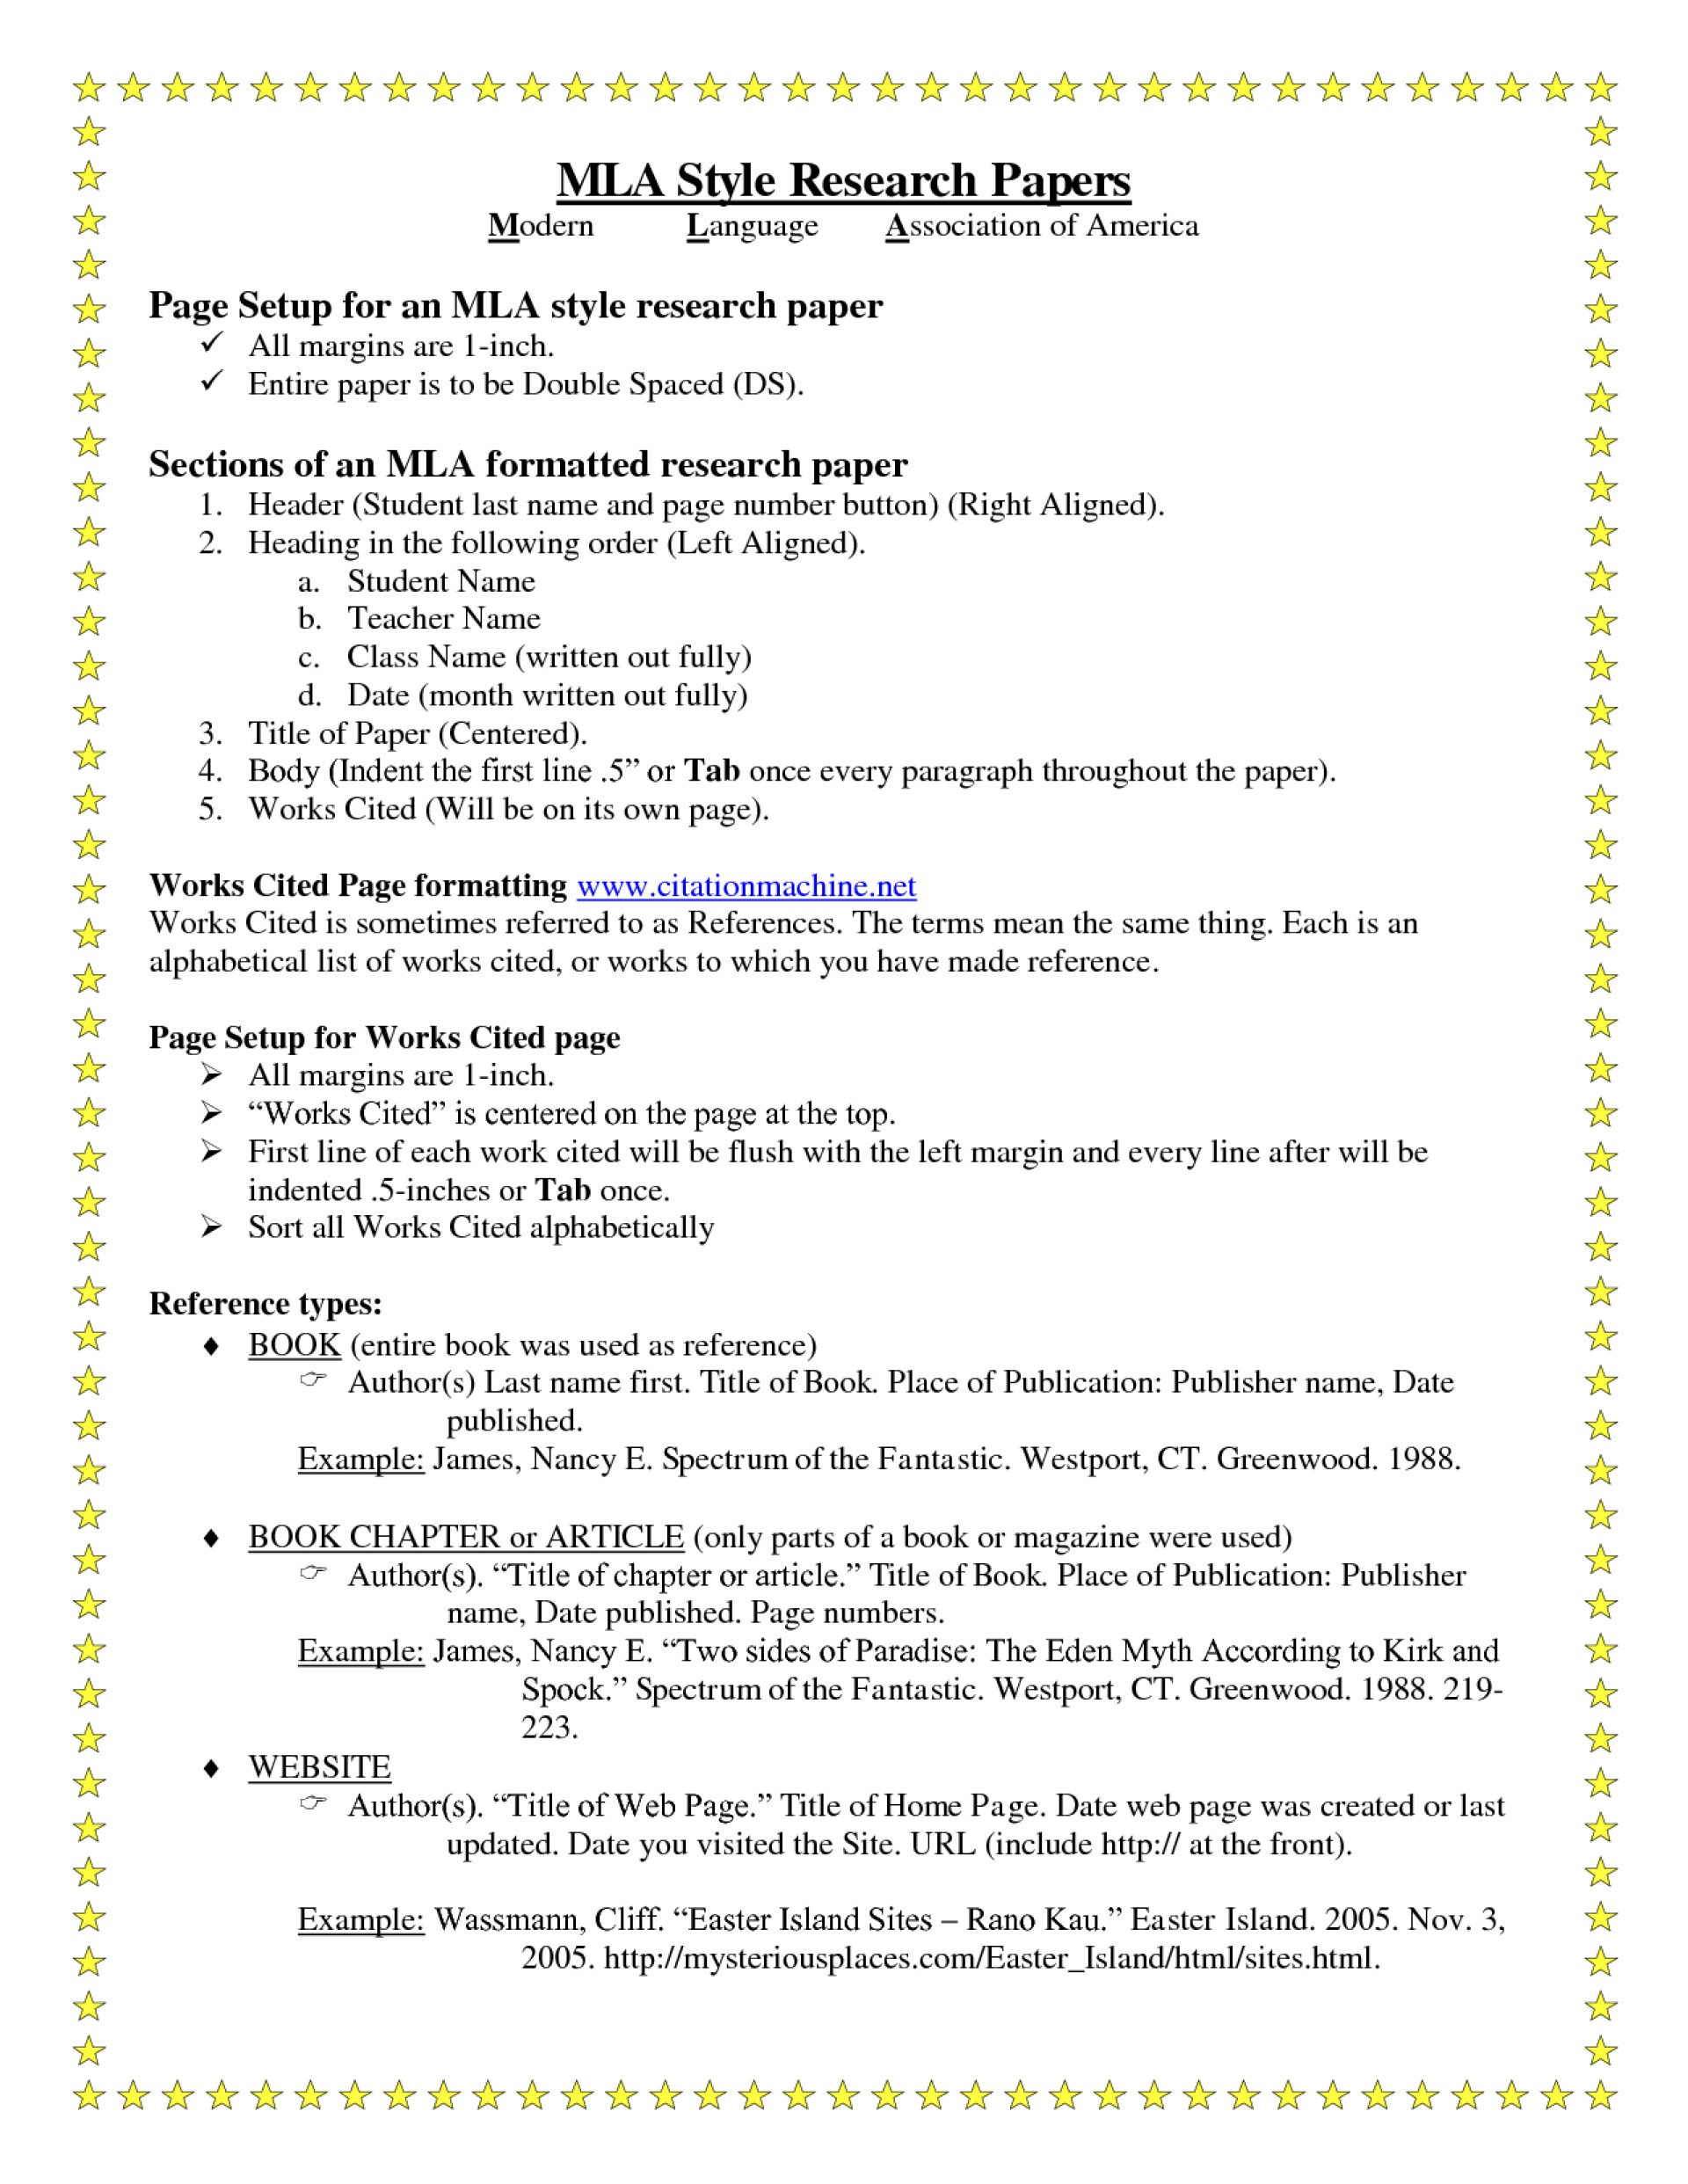 012 Research Paper Order Of Headings In Parts Mla Breathtaking A Format Which The Following Is Not Double-spaced 1920